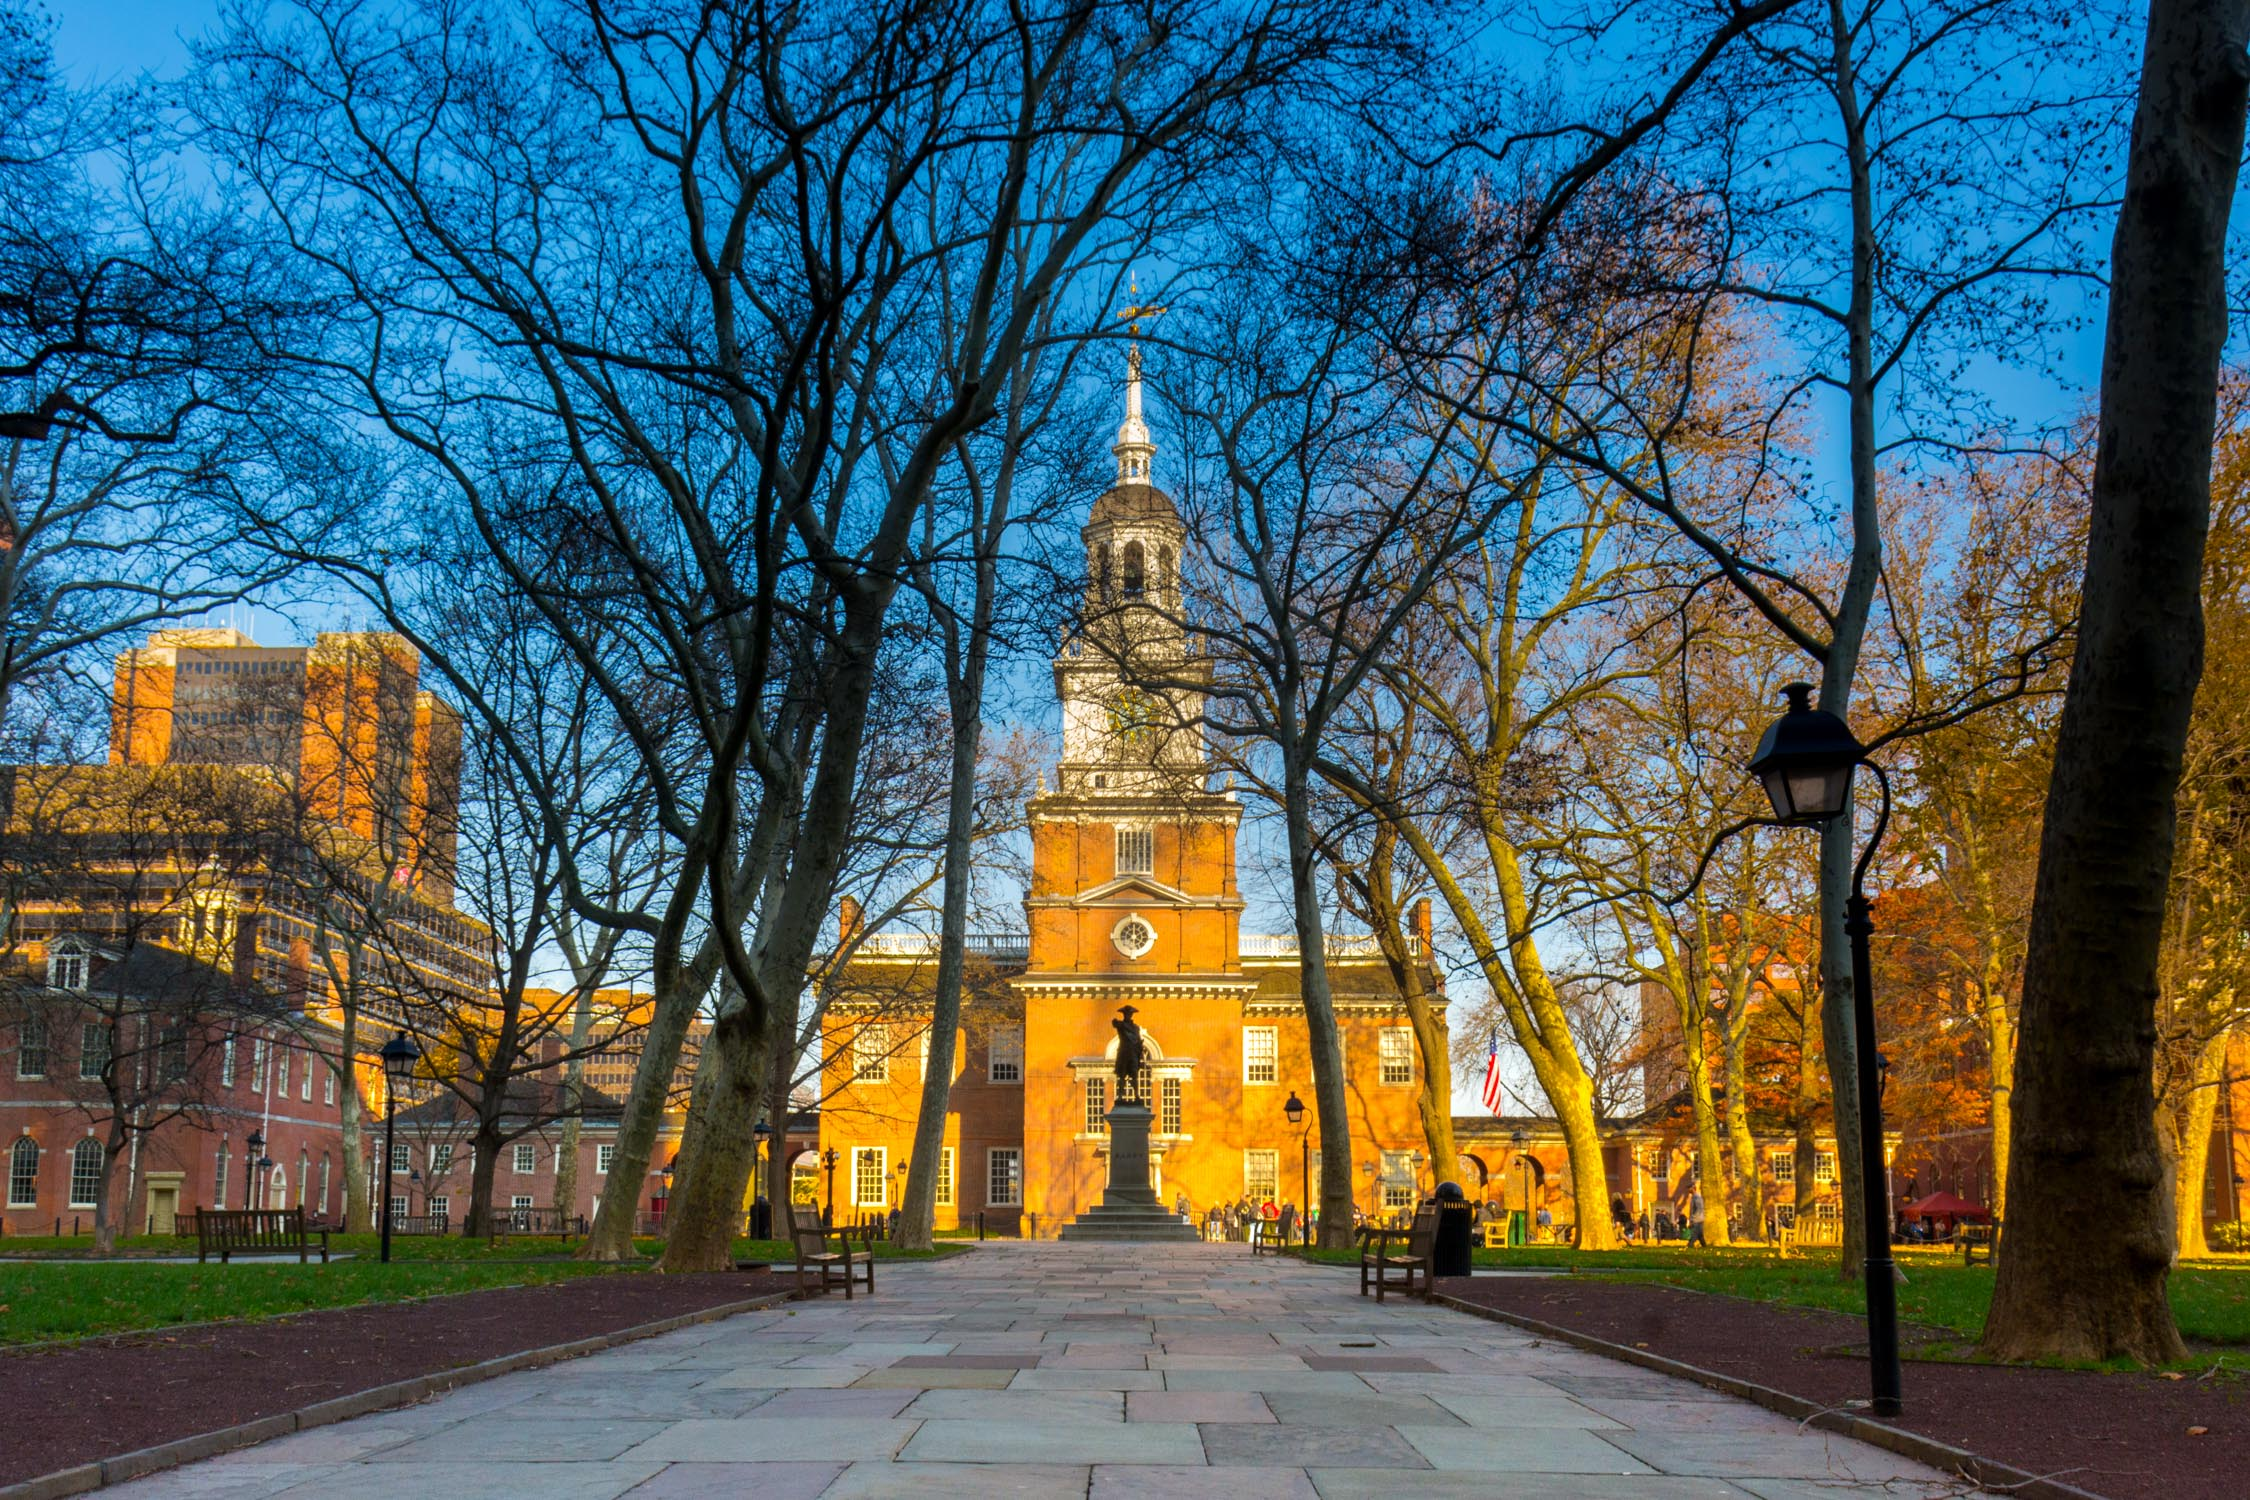 Philadelphia's Independence Hall, where the Declaration of Independence was signed in 1776